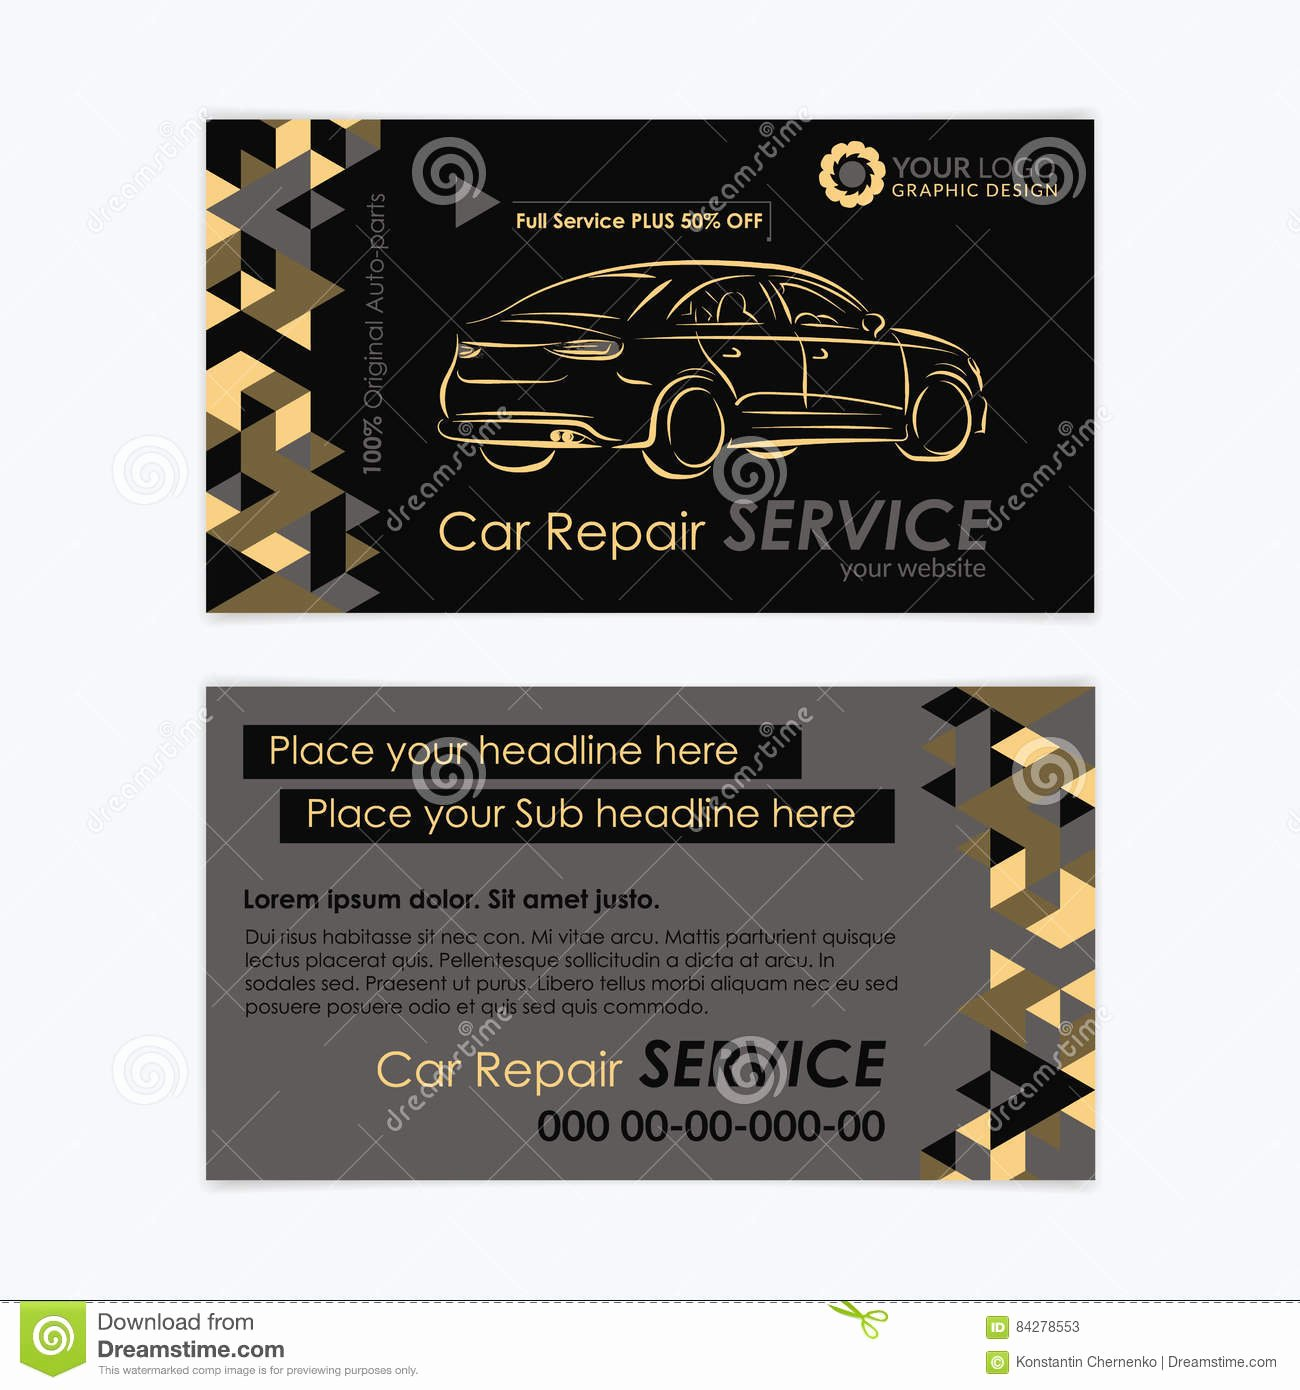 Car Service Business Cards Fresh Automotive Service Business Card Template Car Diagnostics and Transport Repair Create Your Own